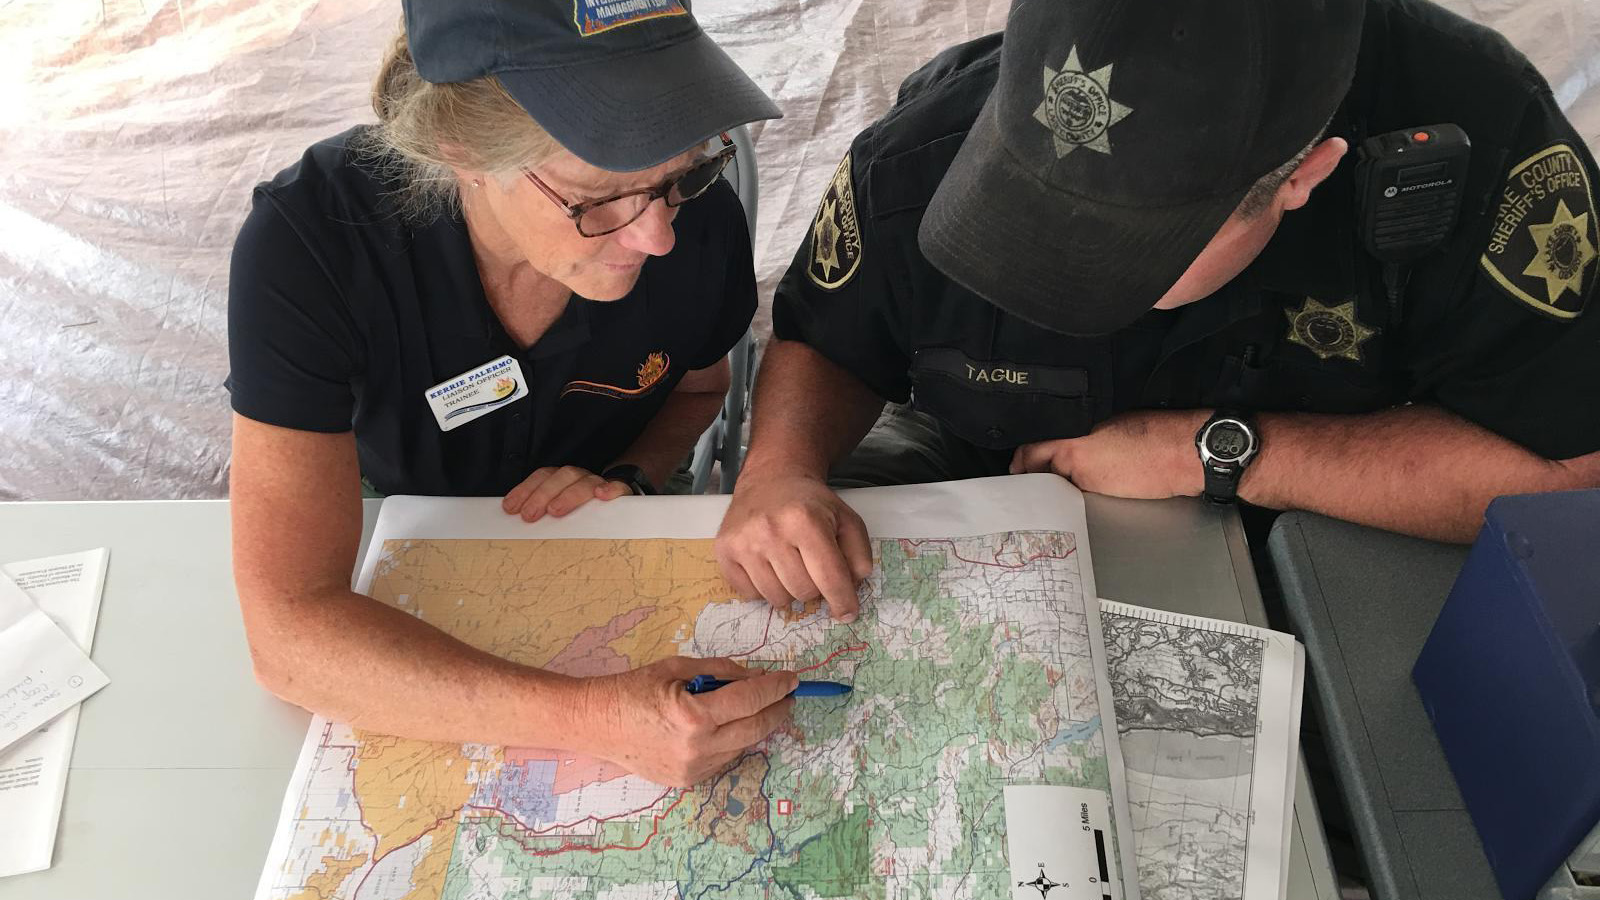 Team Liaison Officer and Lake County Deputy Sheriff working on evacuation orders. Watson Creek Fire (Inciweb)